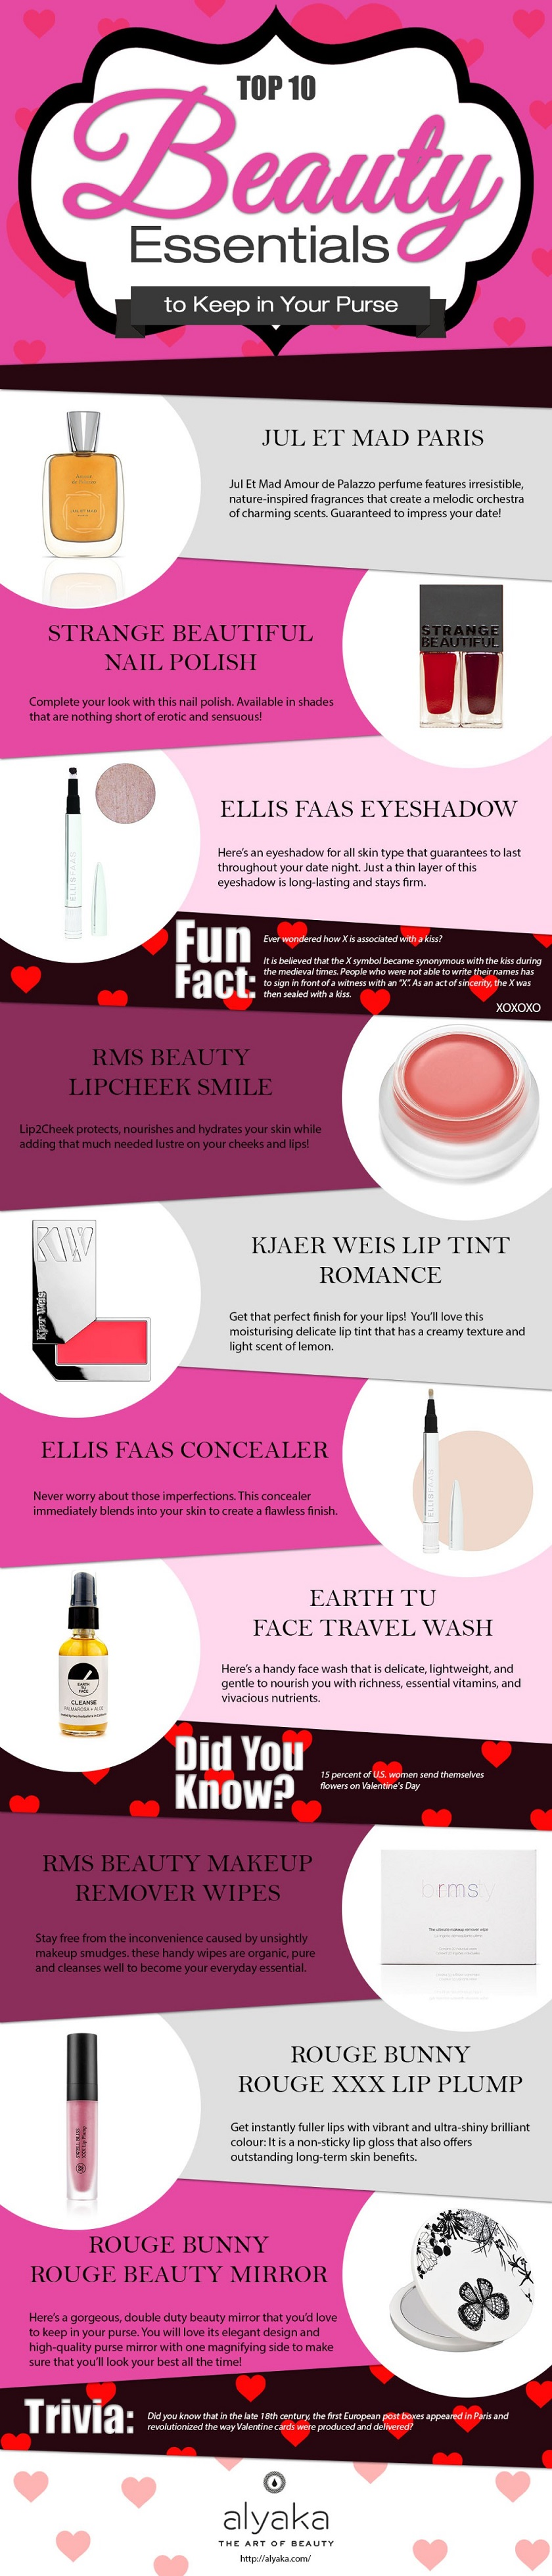 beauty essentials to keep in your purse infographic